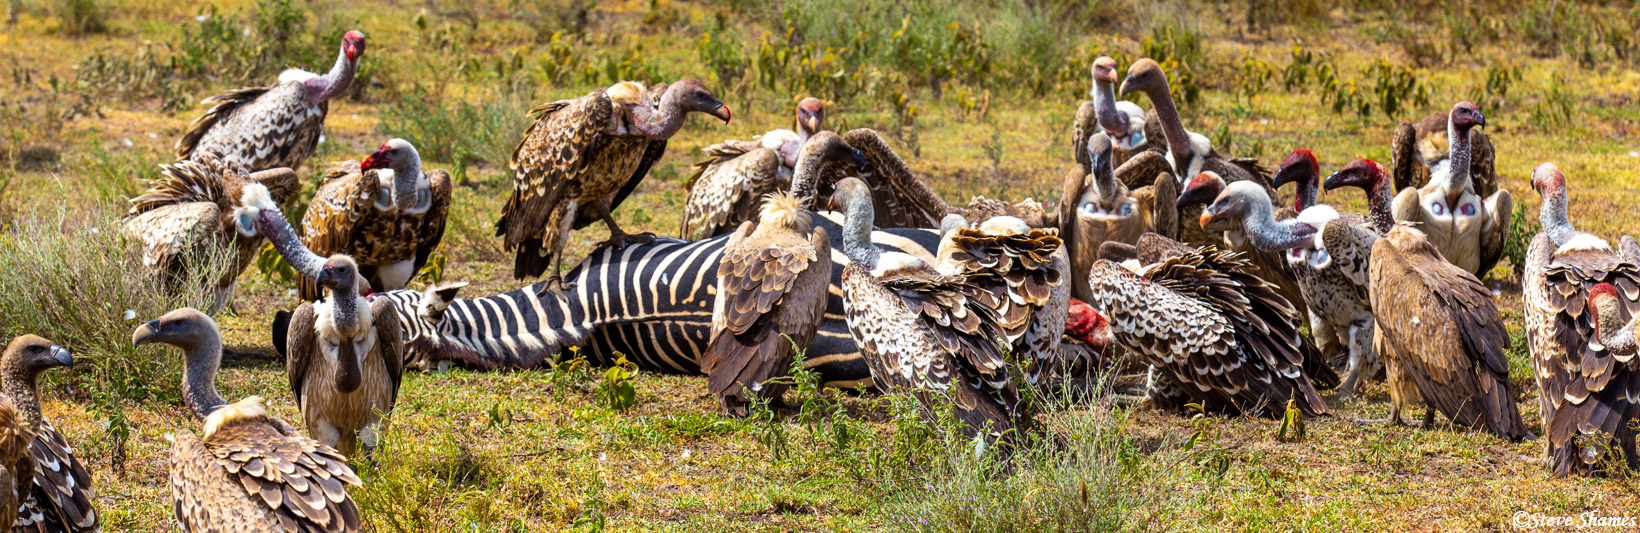 serengeti, national park, tanzania, lapped faced, griffon vulture, african, photo